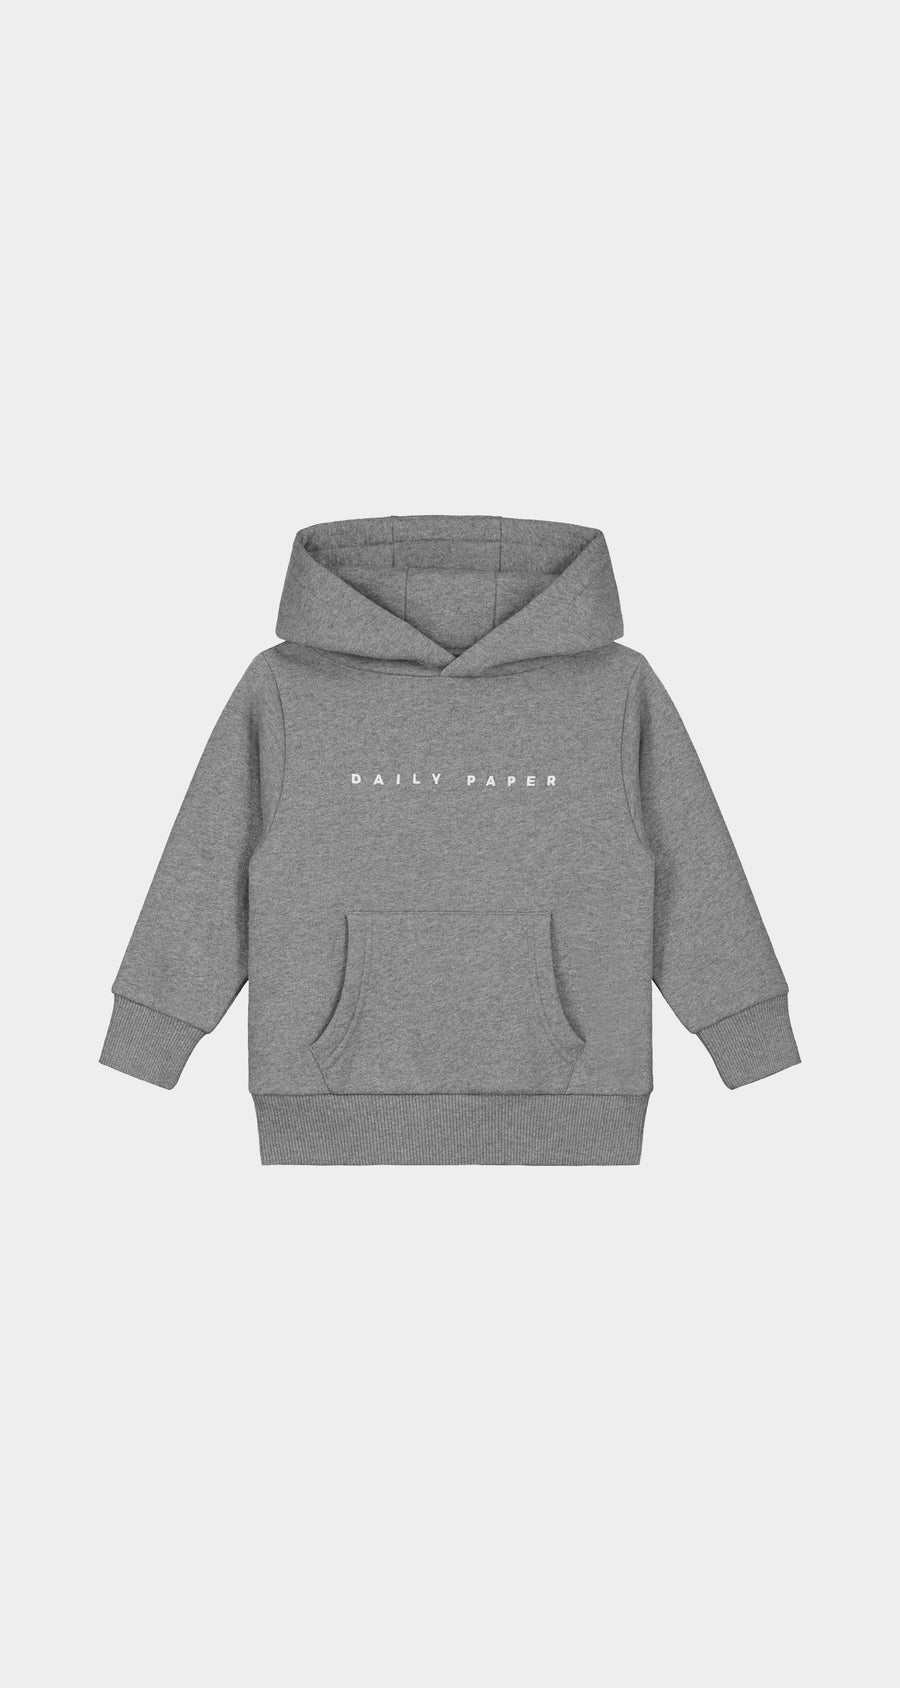 Daily Paper - Grey Kids Alias Hoody - Front